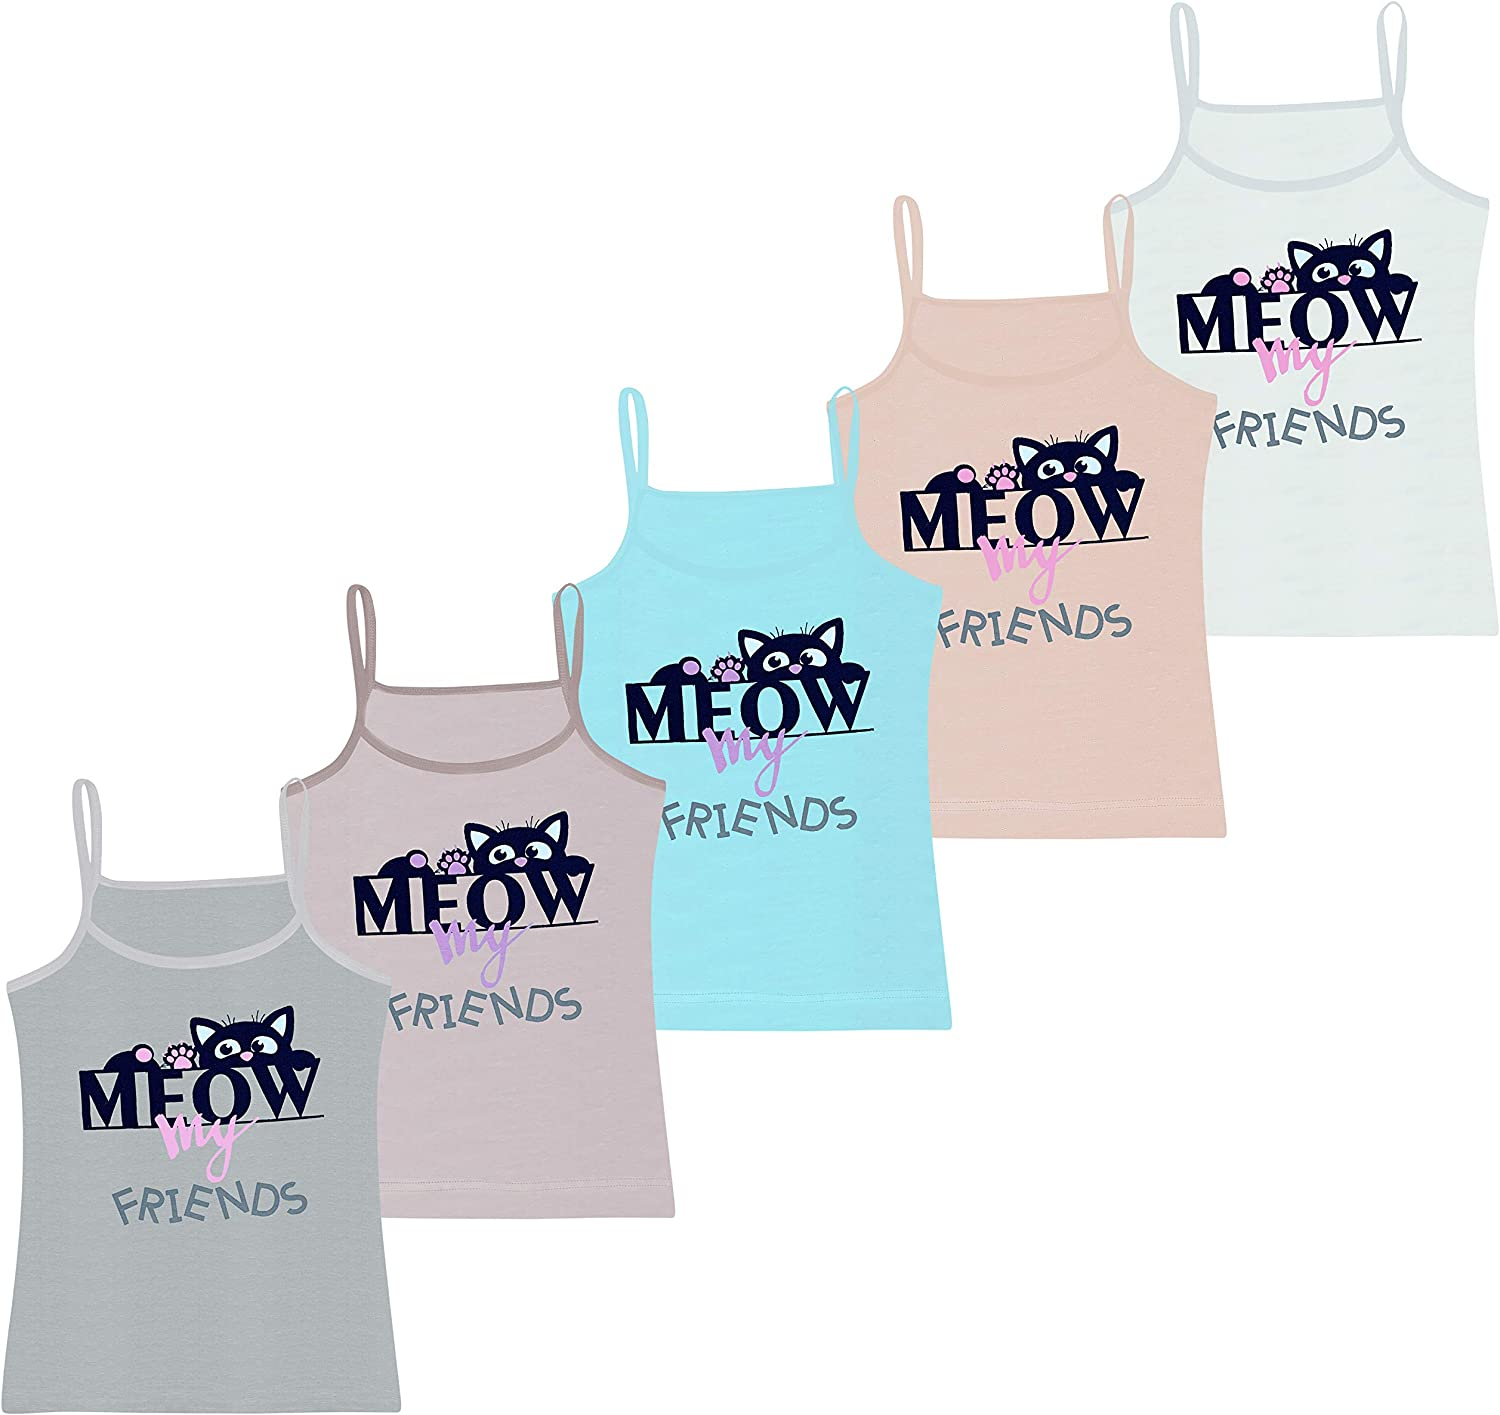 Pack of 5 Cotton Girls Vests Comfortable and Soft on The Skin Sleeveless Spaghetti Strap Tops with Different Motifs